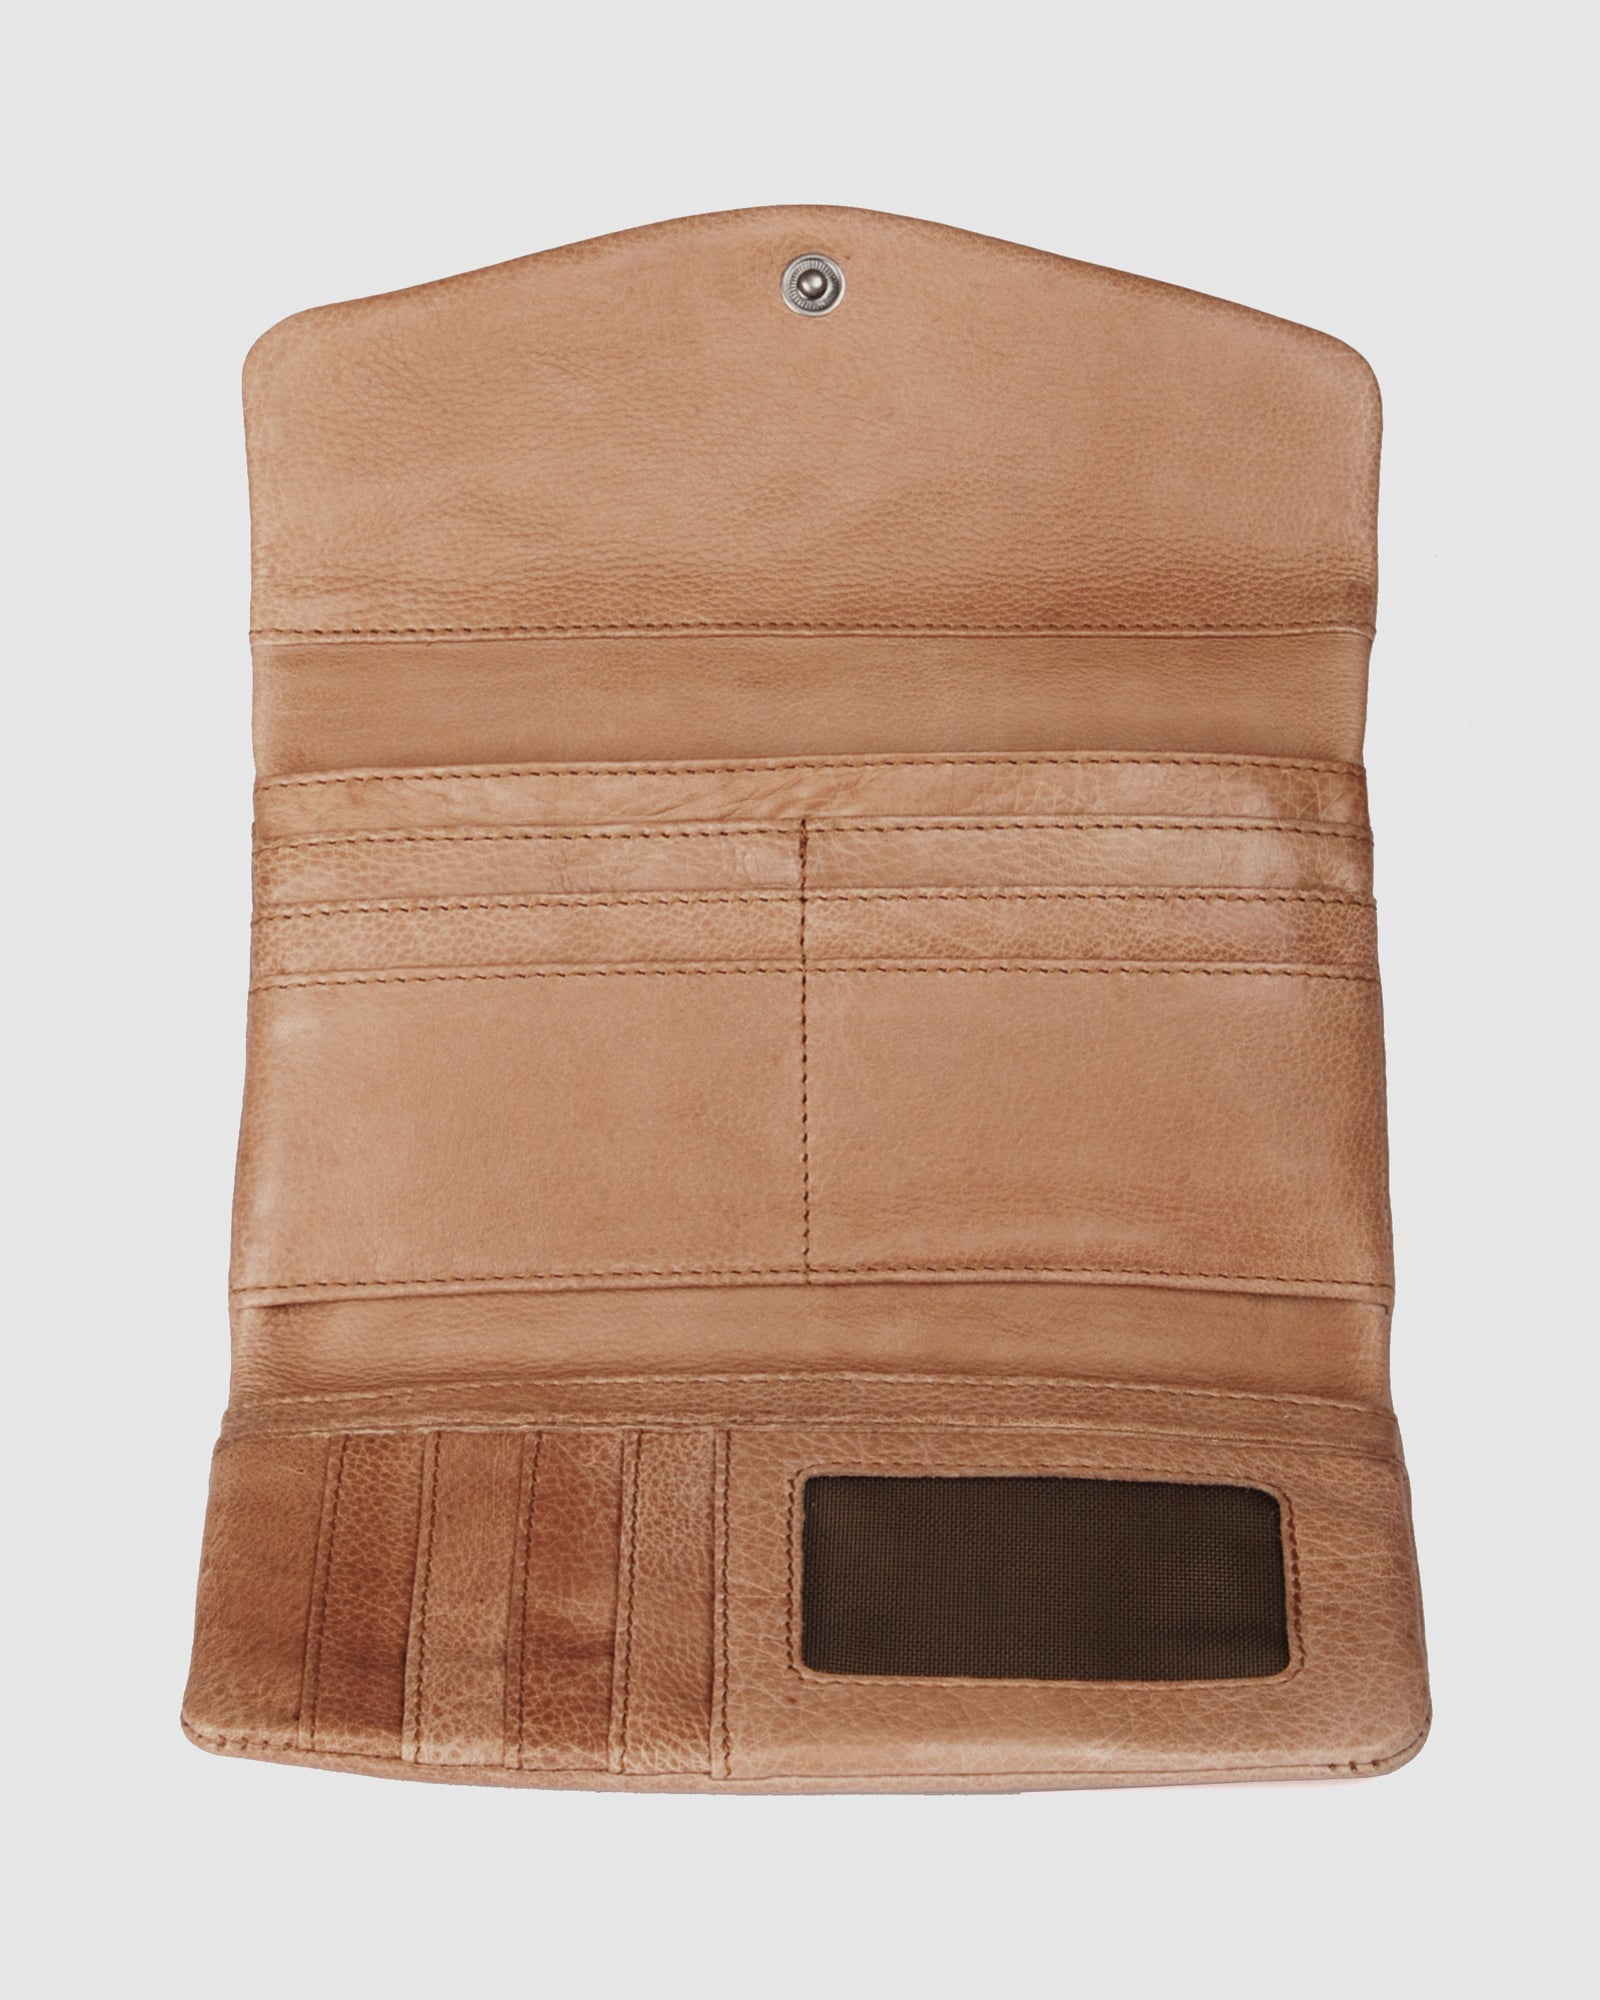 BIBA JERSEY SUMMER WALLET TAN LEATHER